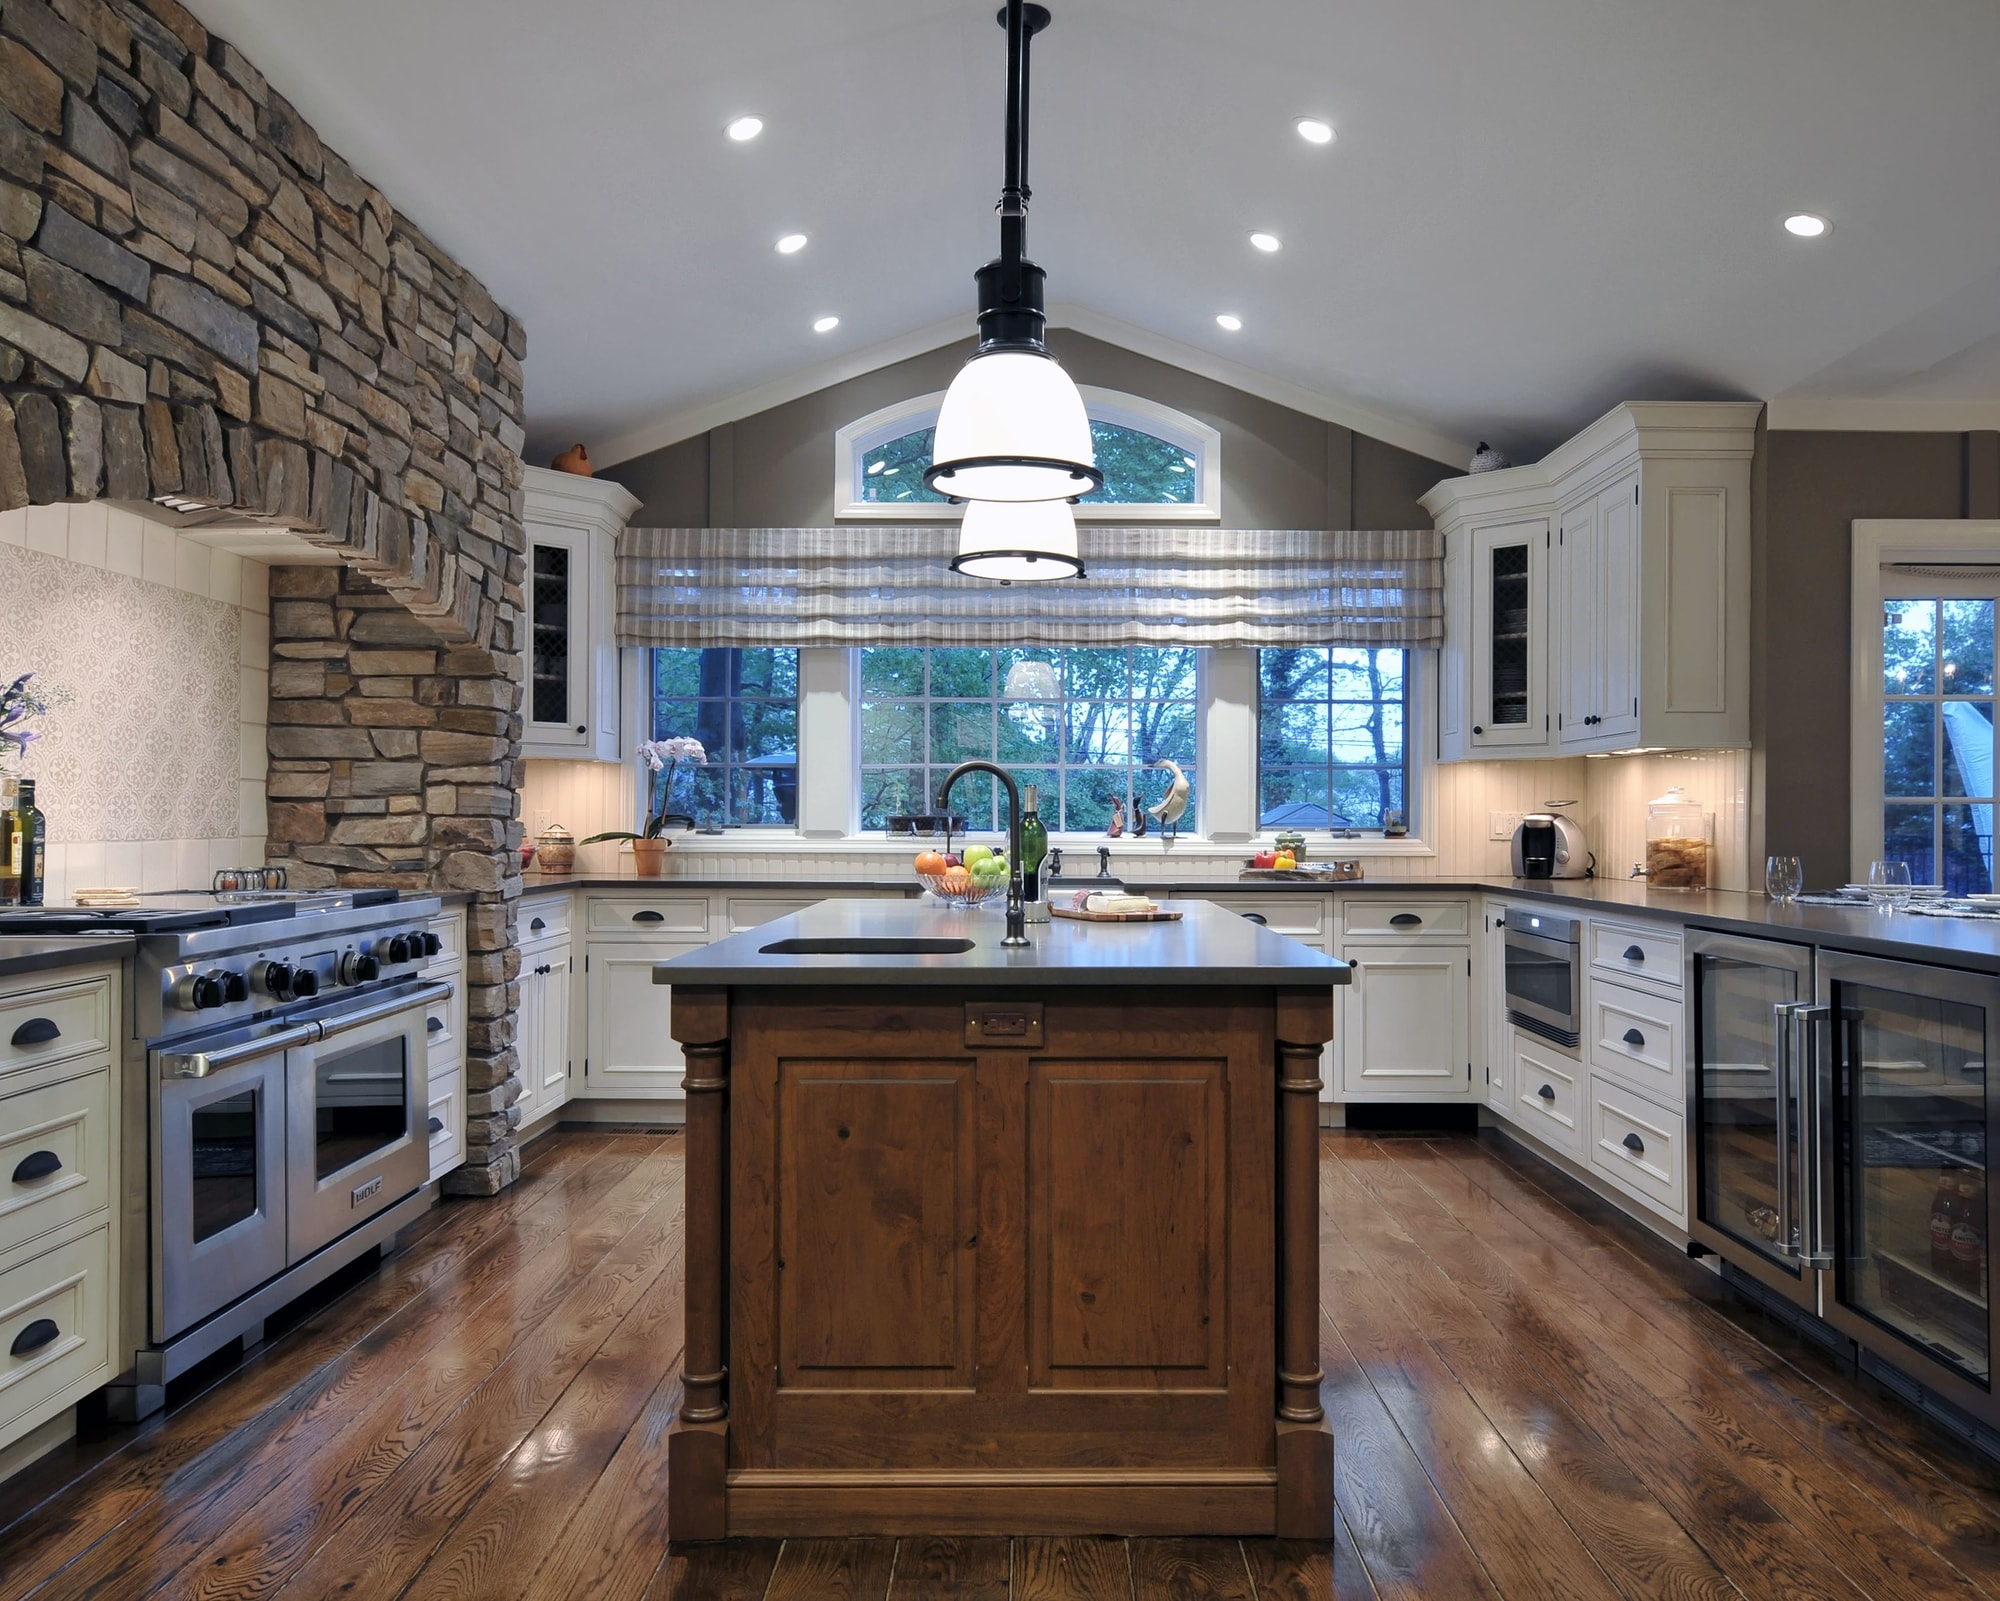 Traditional style kitchen with brick range hood